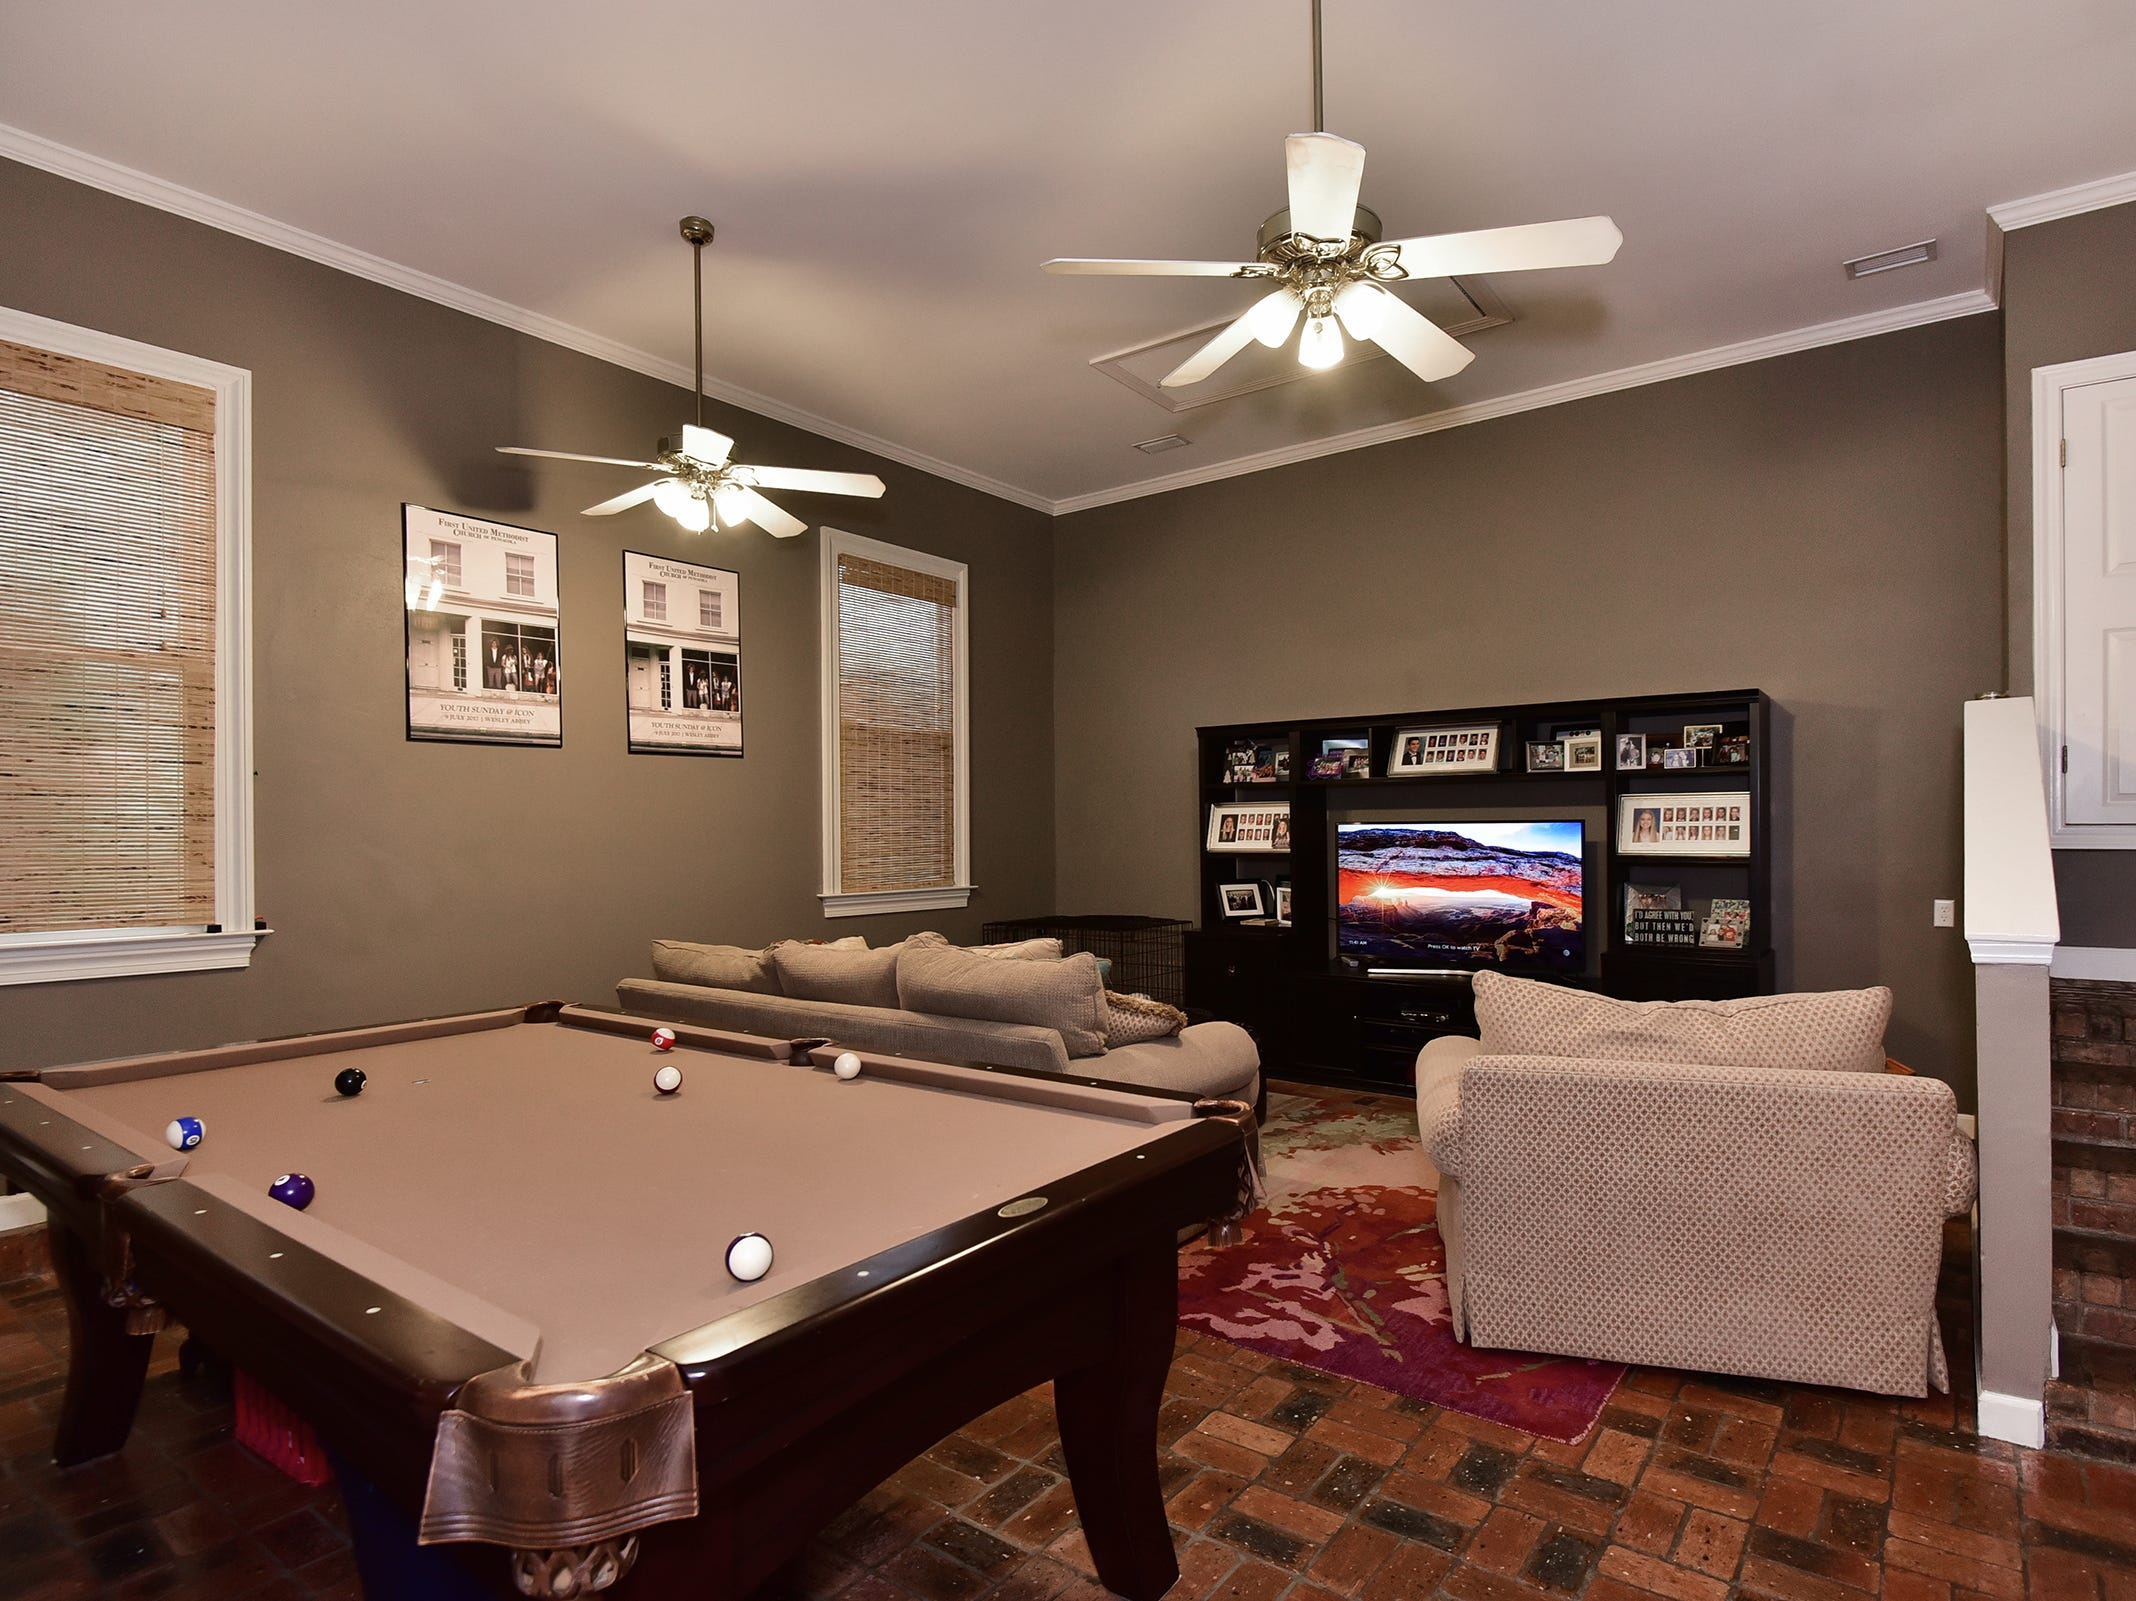 2474 Semur Rd., the playroom/media room is perfect when entertaining.